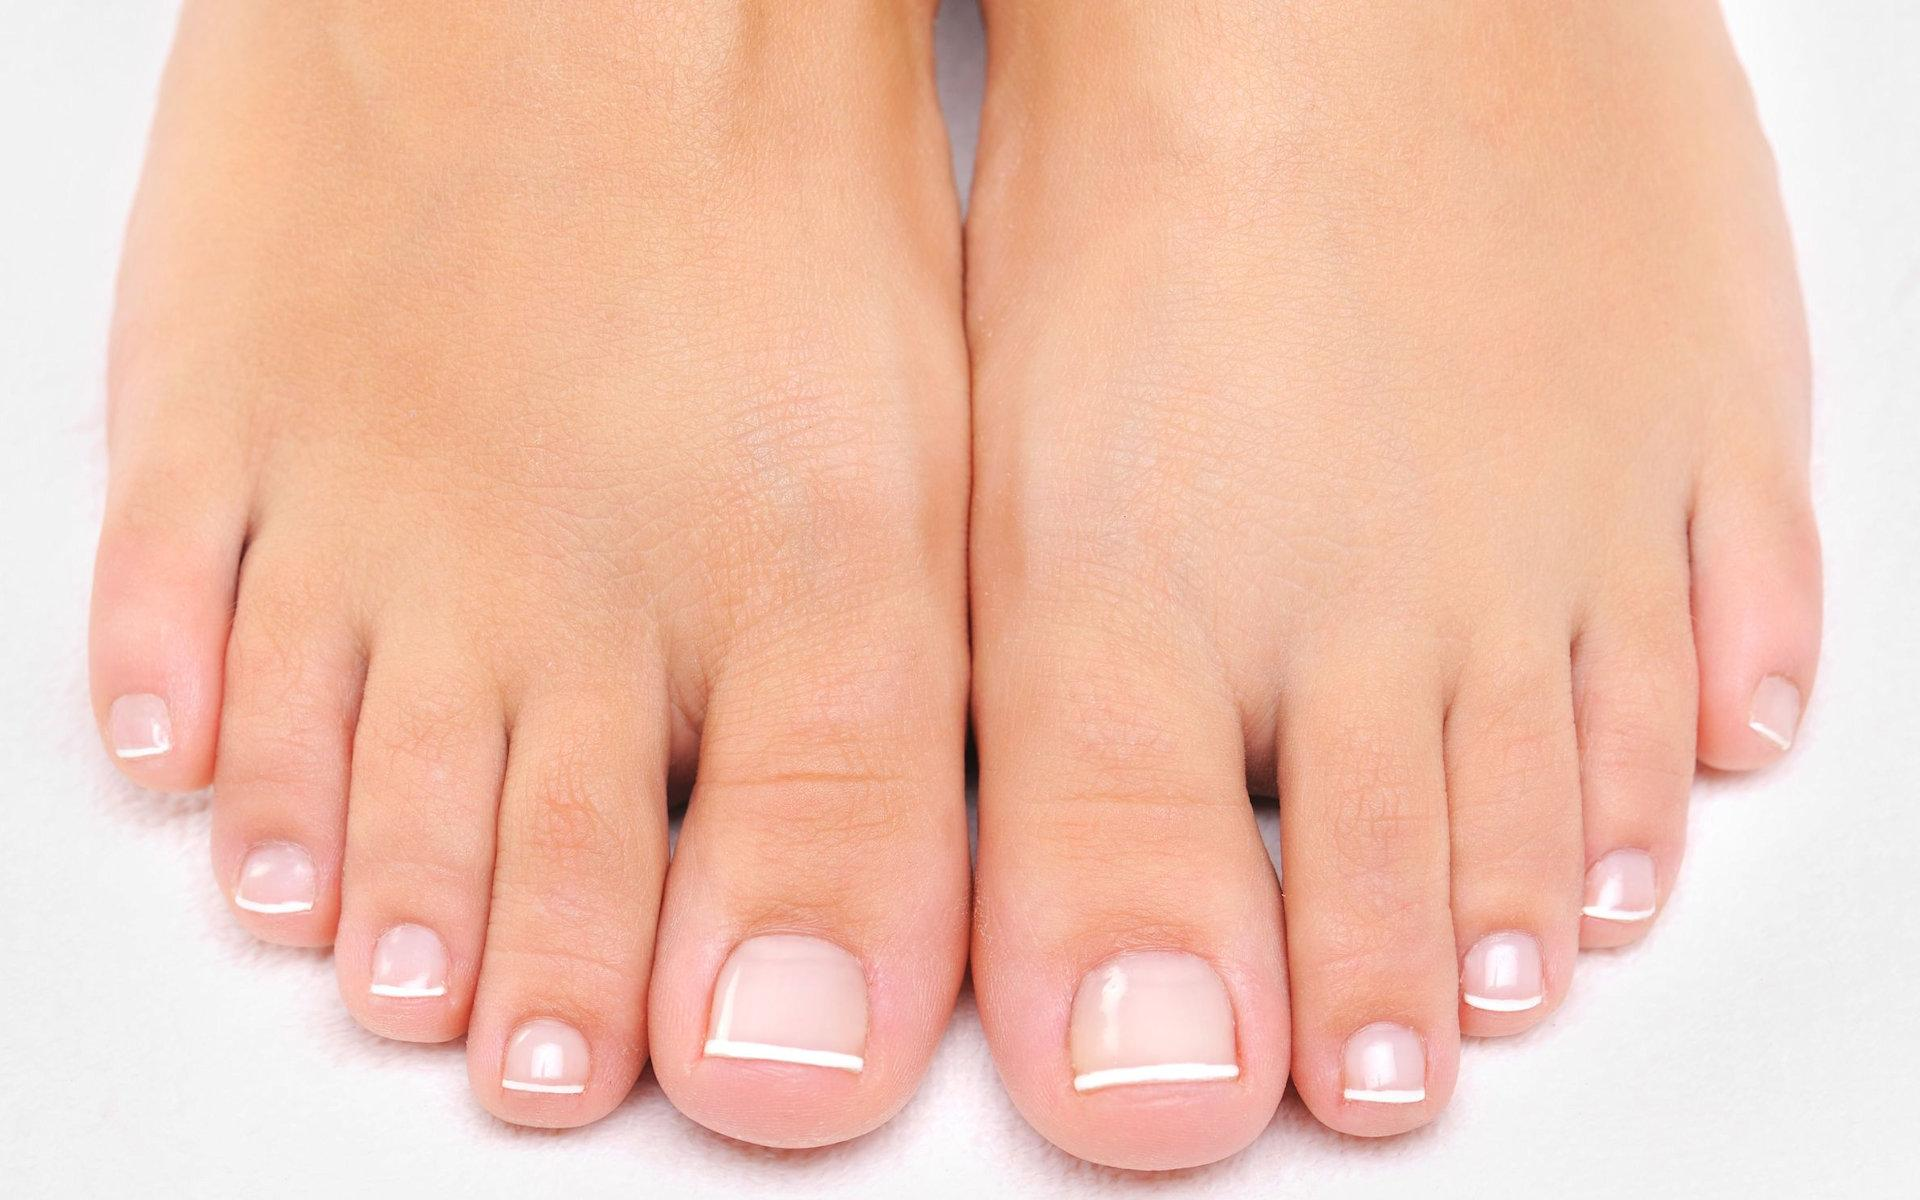 infections-of-the-nails-and-skin-5962052_m